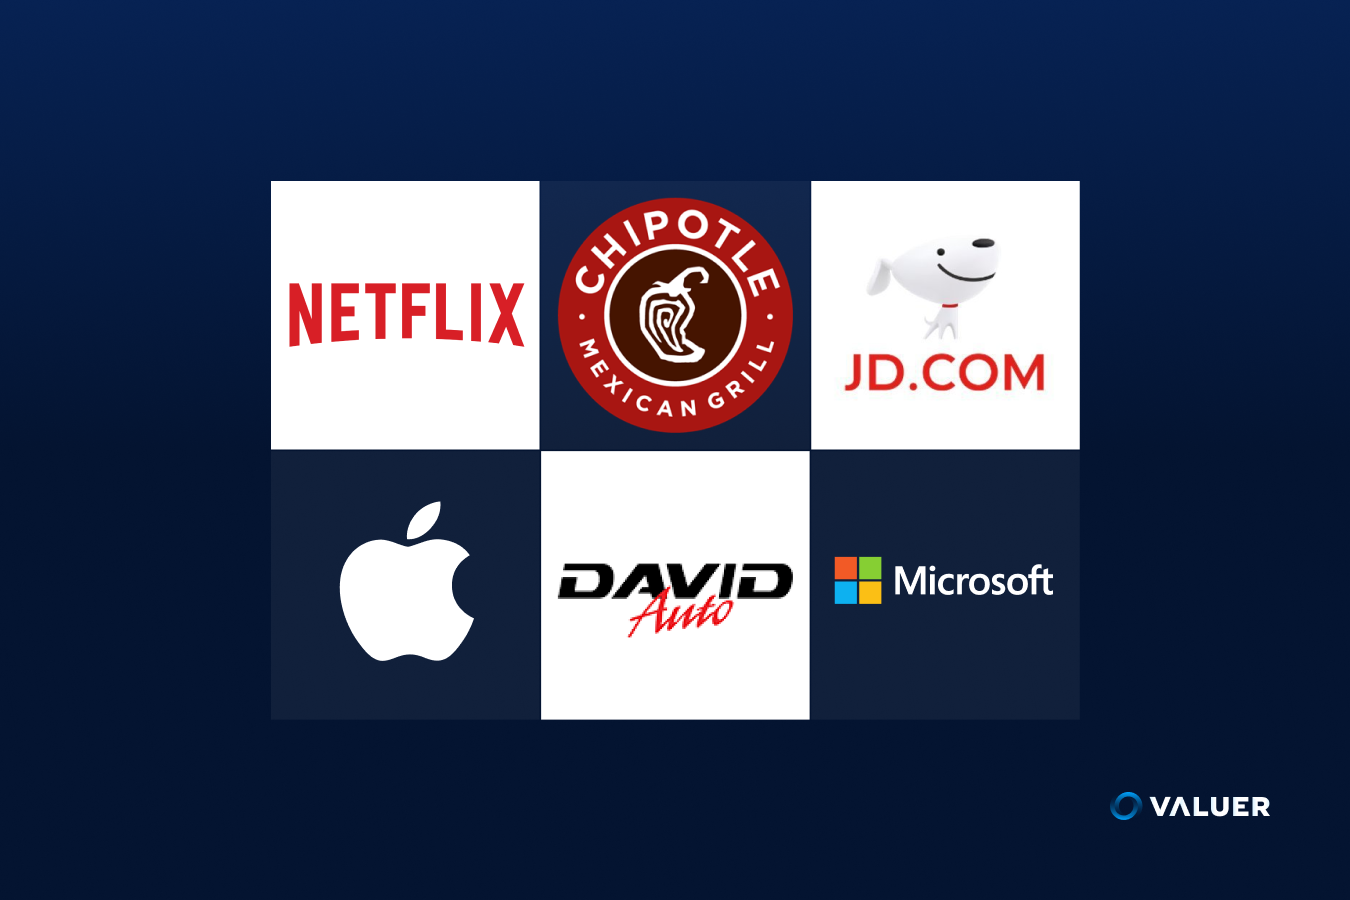 logos of Netflix, Chipotle, JD.com, Apple, David Auto, and Microsoft